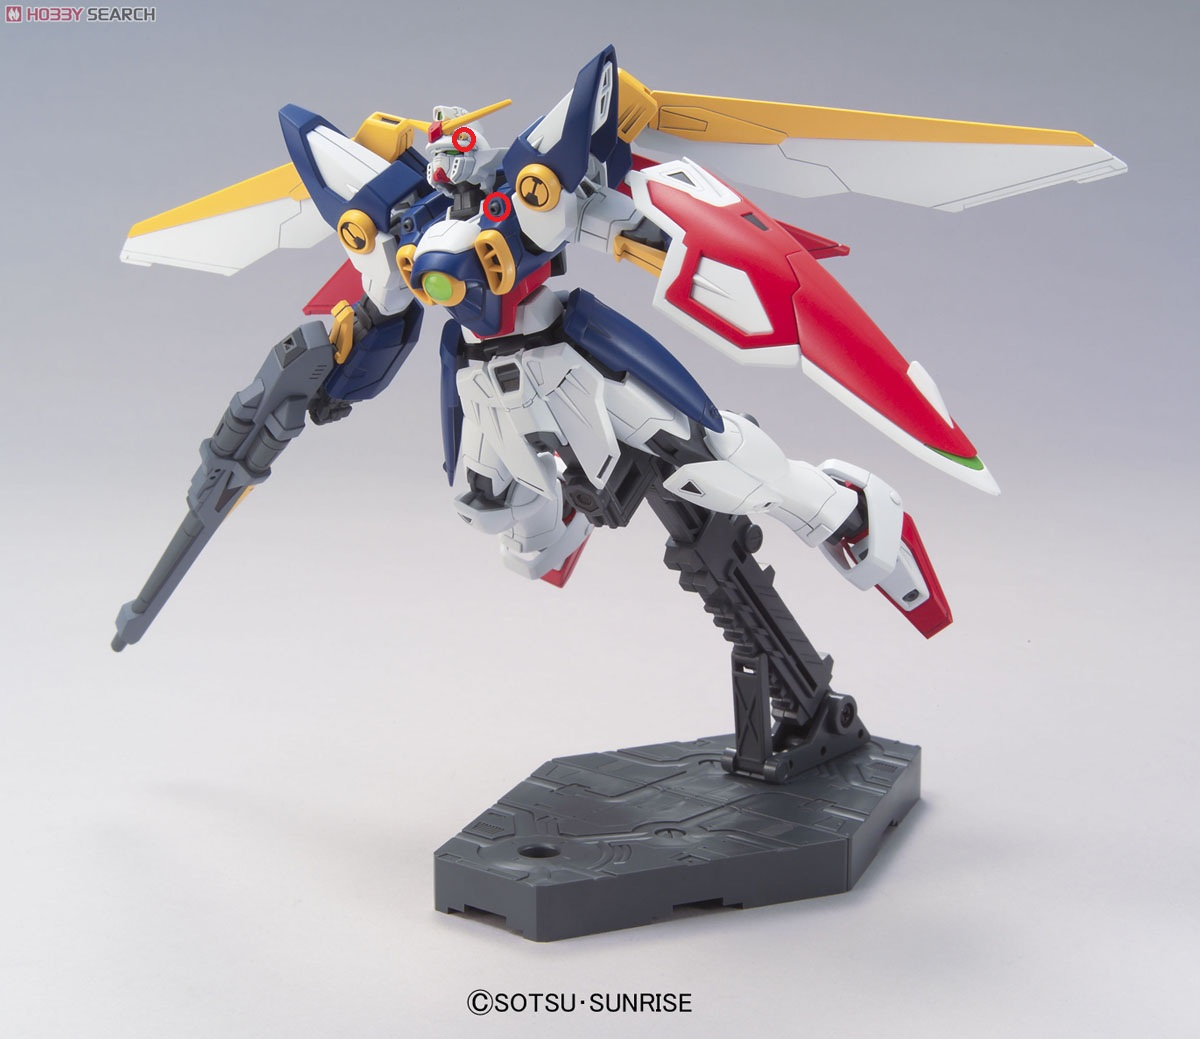 mrbeansman anime gundam counterattackenhktwkr fighters build discussion twilight axis